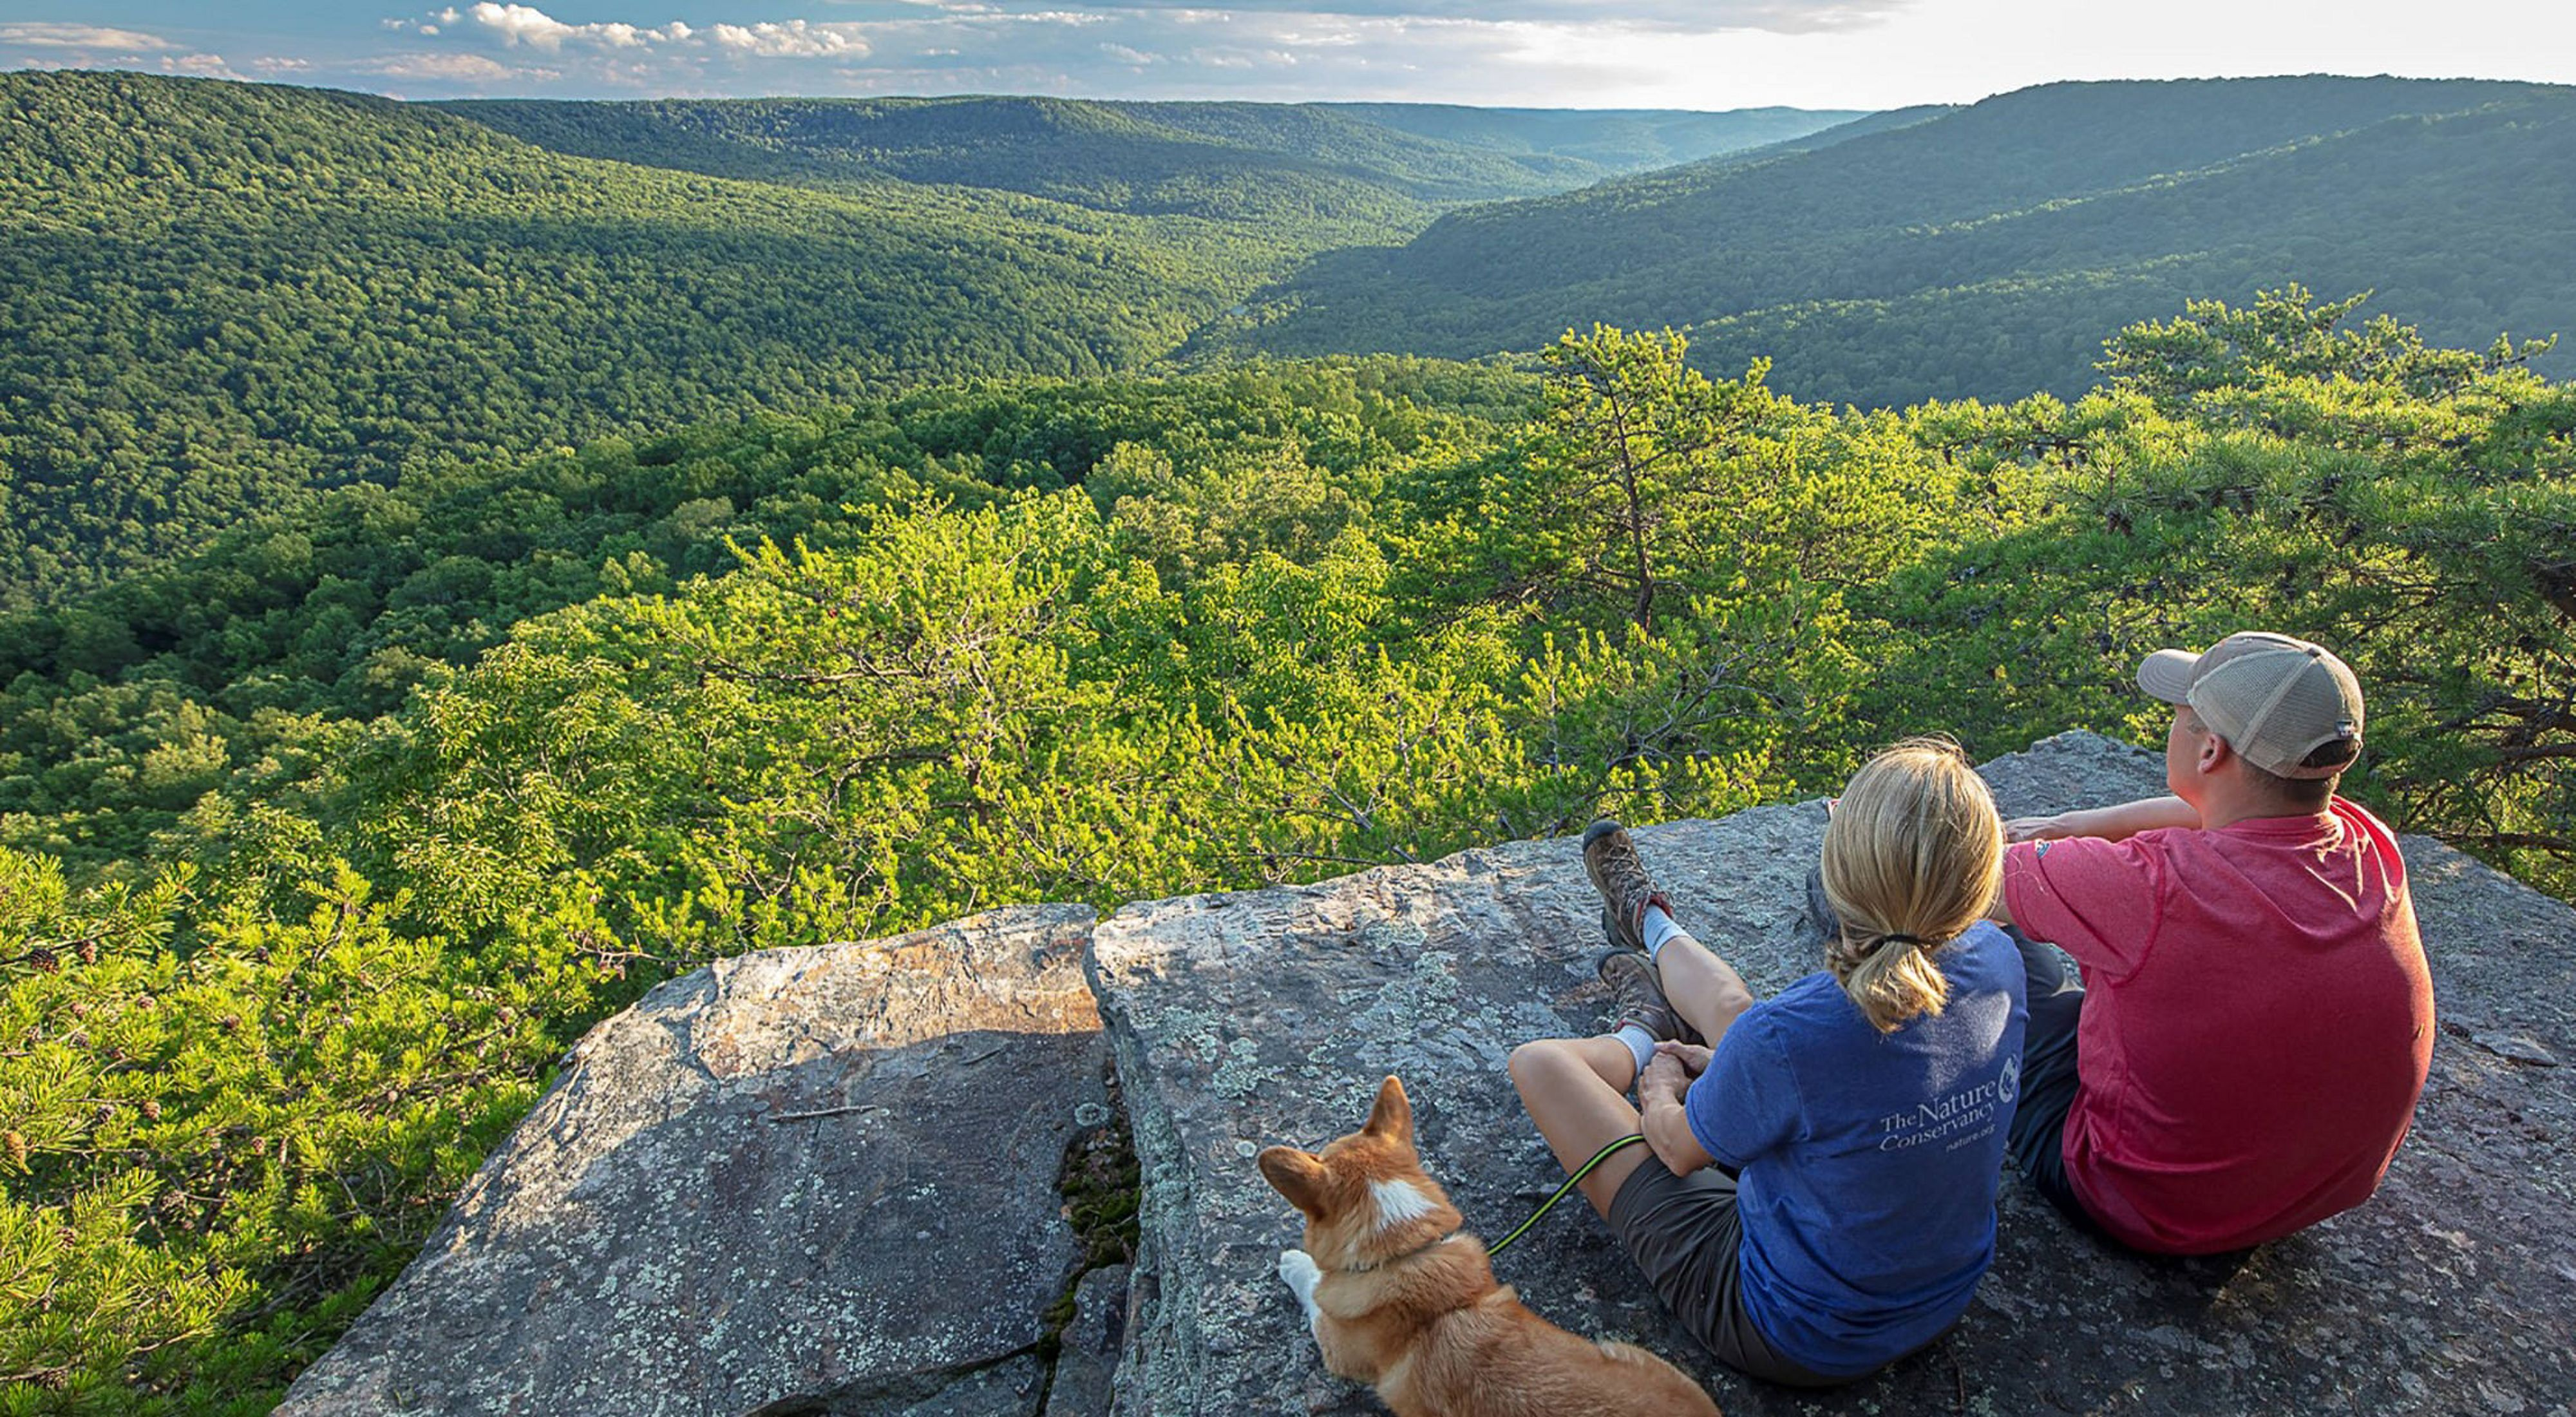 Two people sit on a rocky outcrop to enjoy a view of a forested valley.